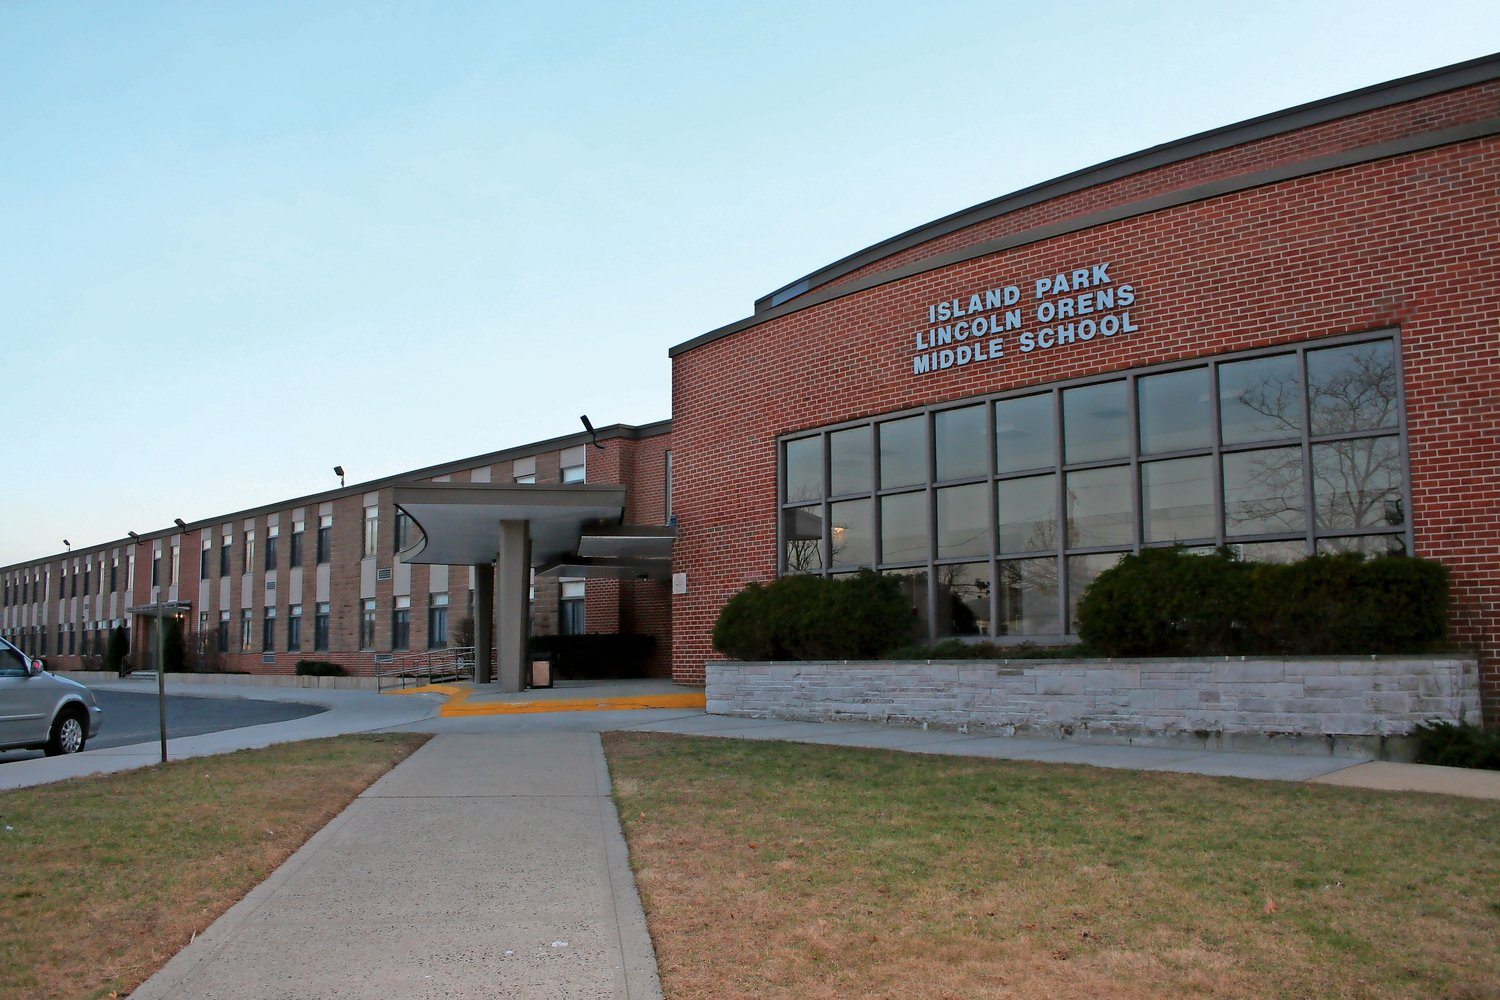 The polling place for Island Park is Lincoln Orens Middle School. Voting will take place on May 21 from 7 a.m. to 9 p.m.